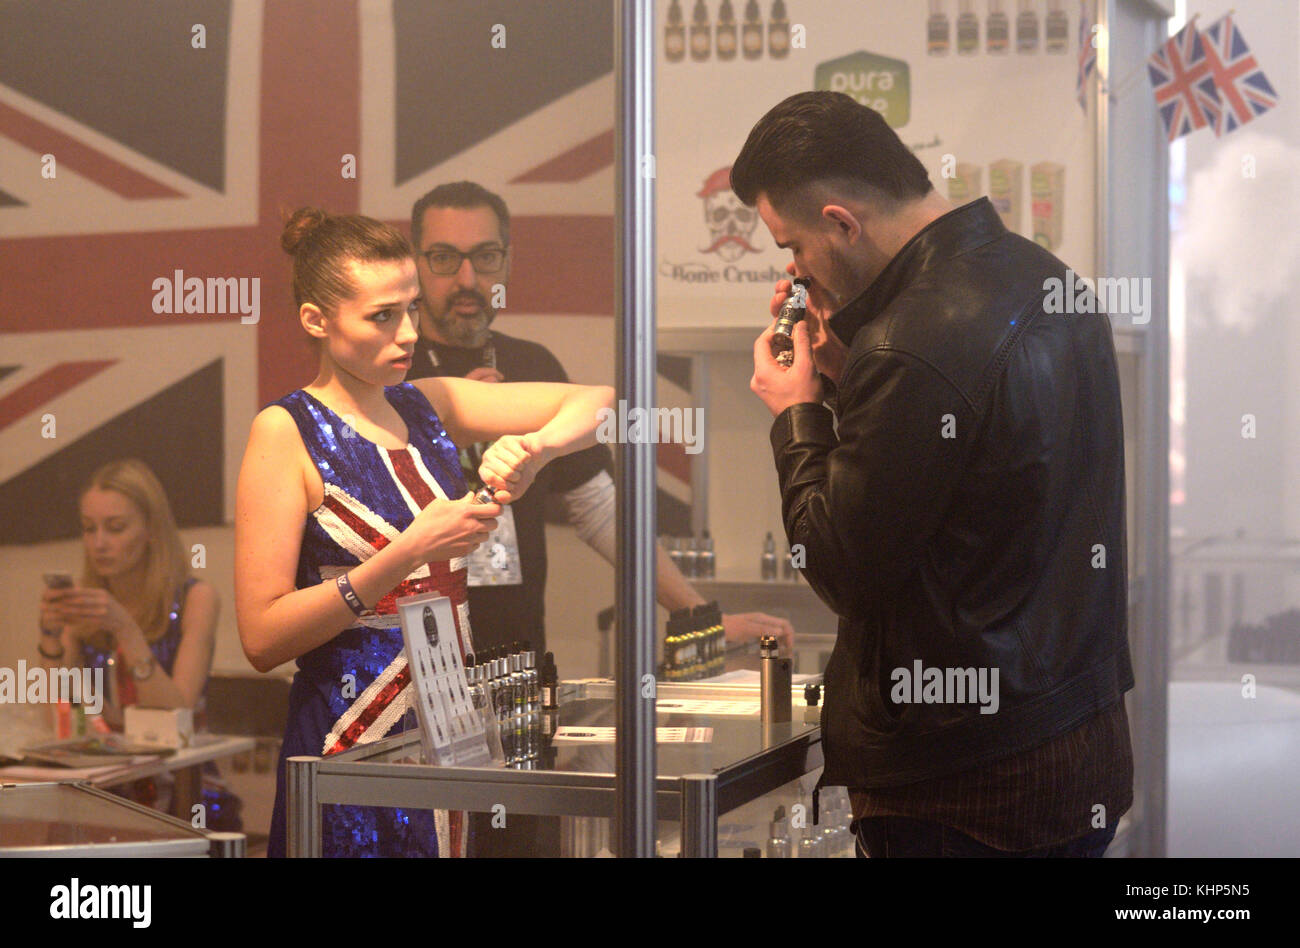 Man smelling vape flavour from a bottle and a girl going to give him another one. Vape&Trade Expo. March 19, - Stock Image